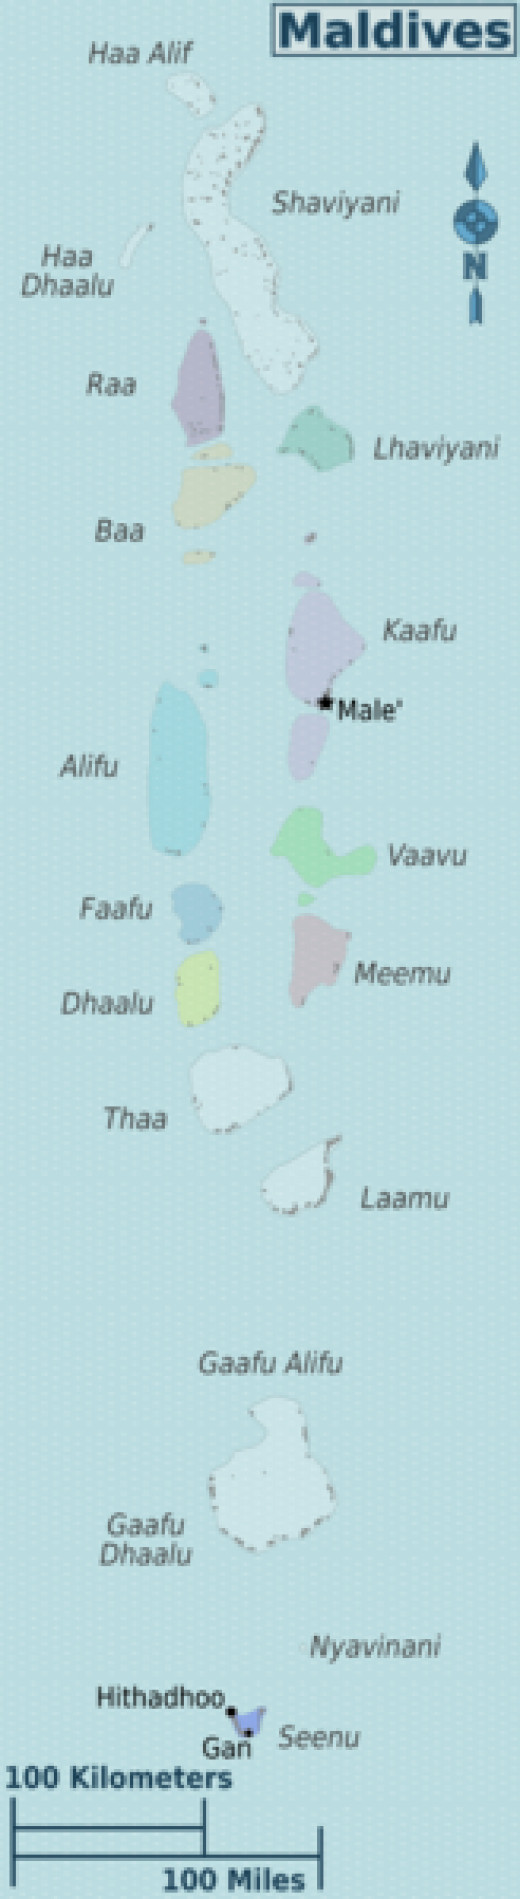 Maldives regions map